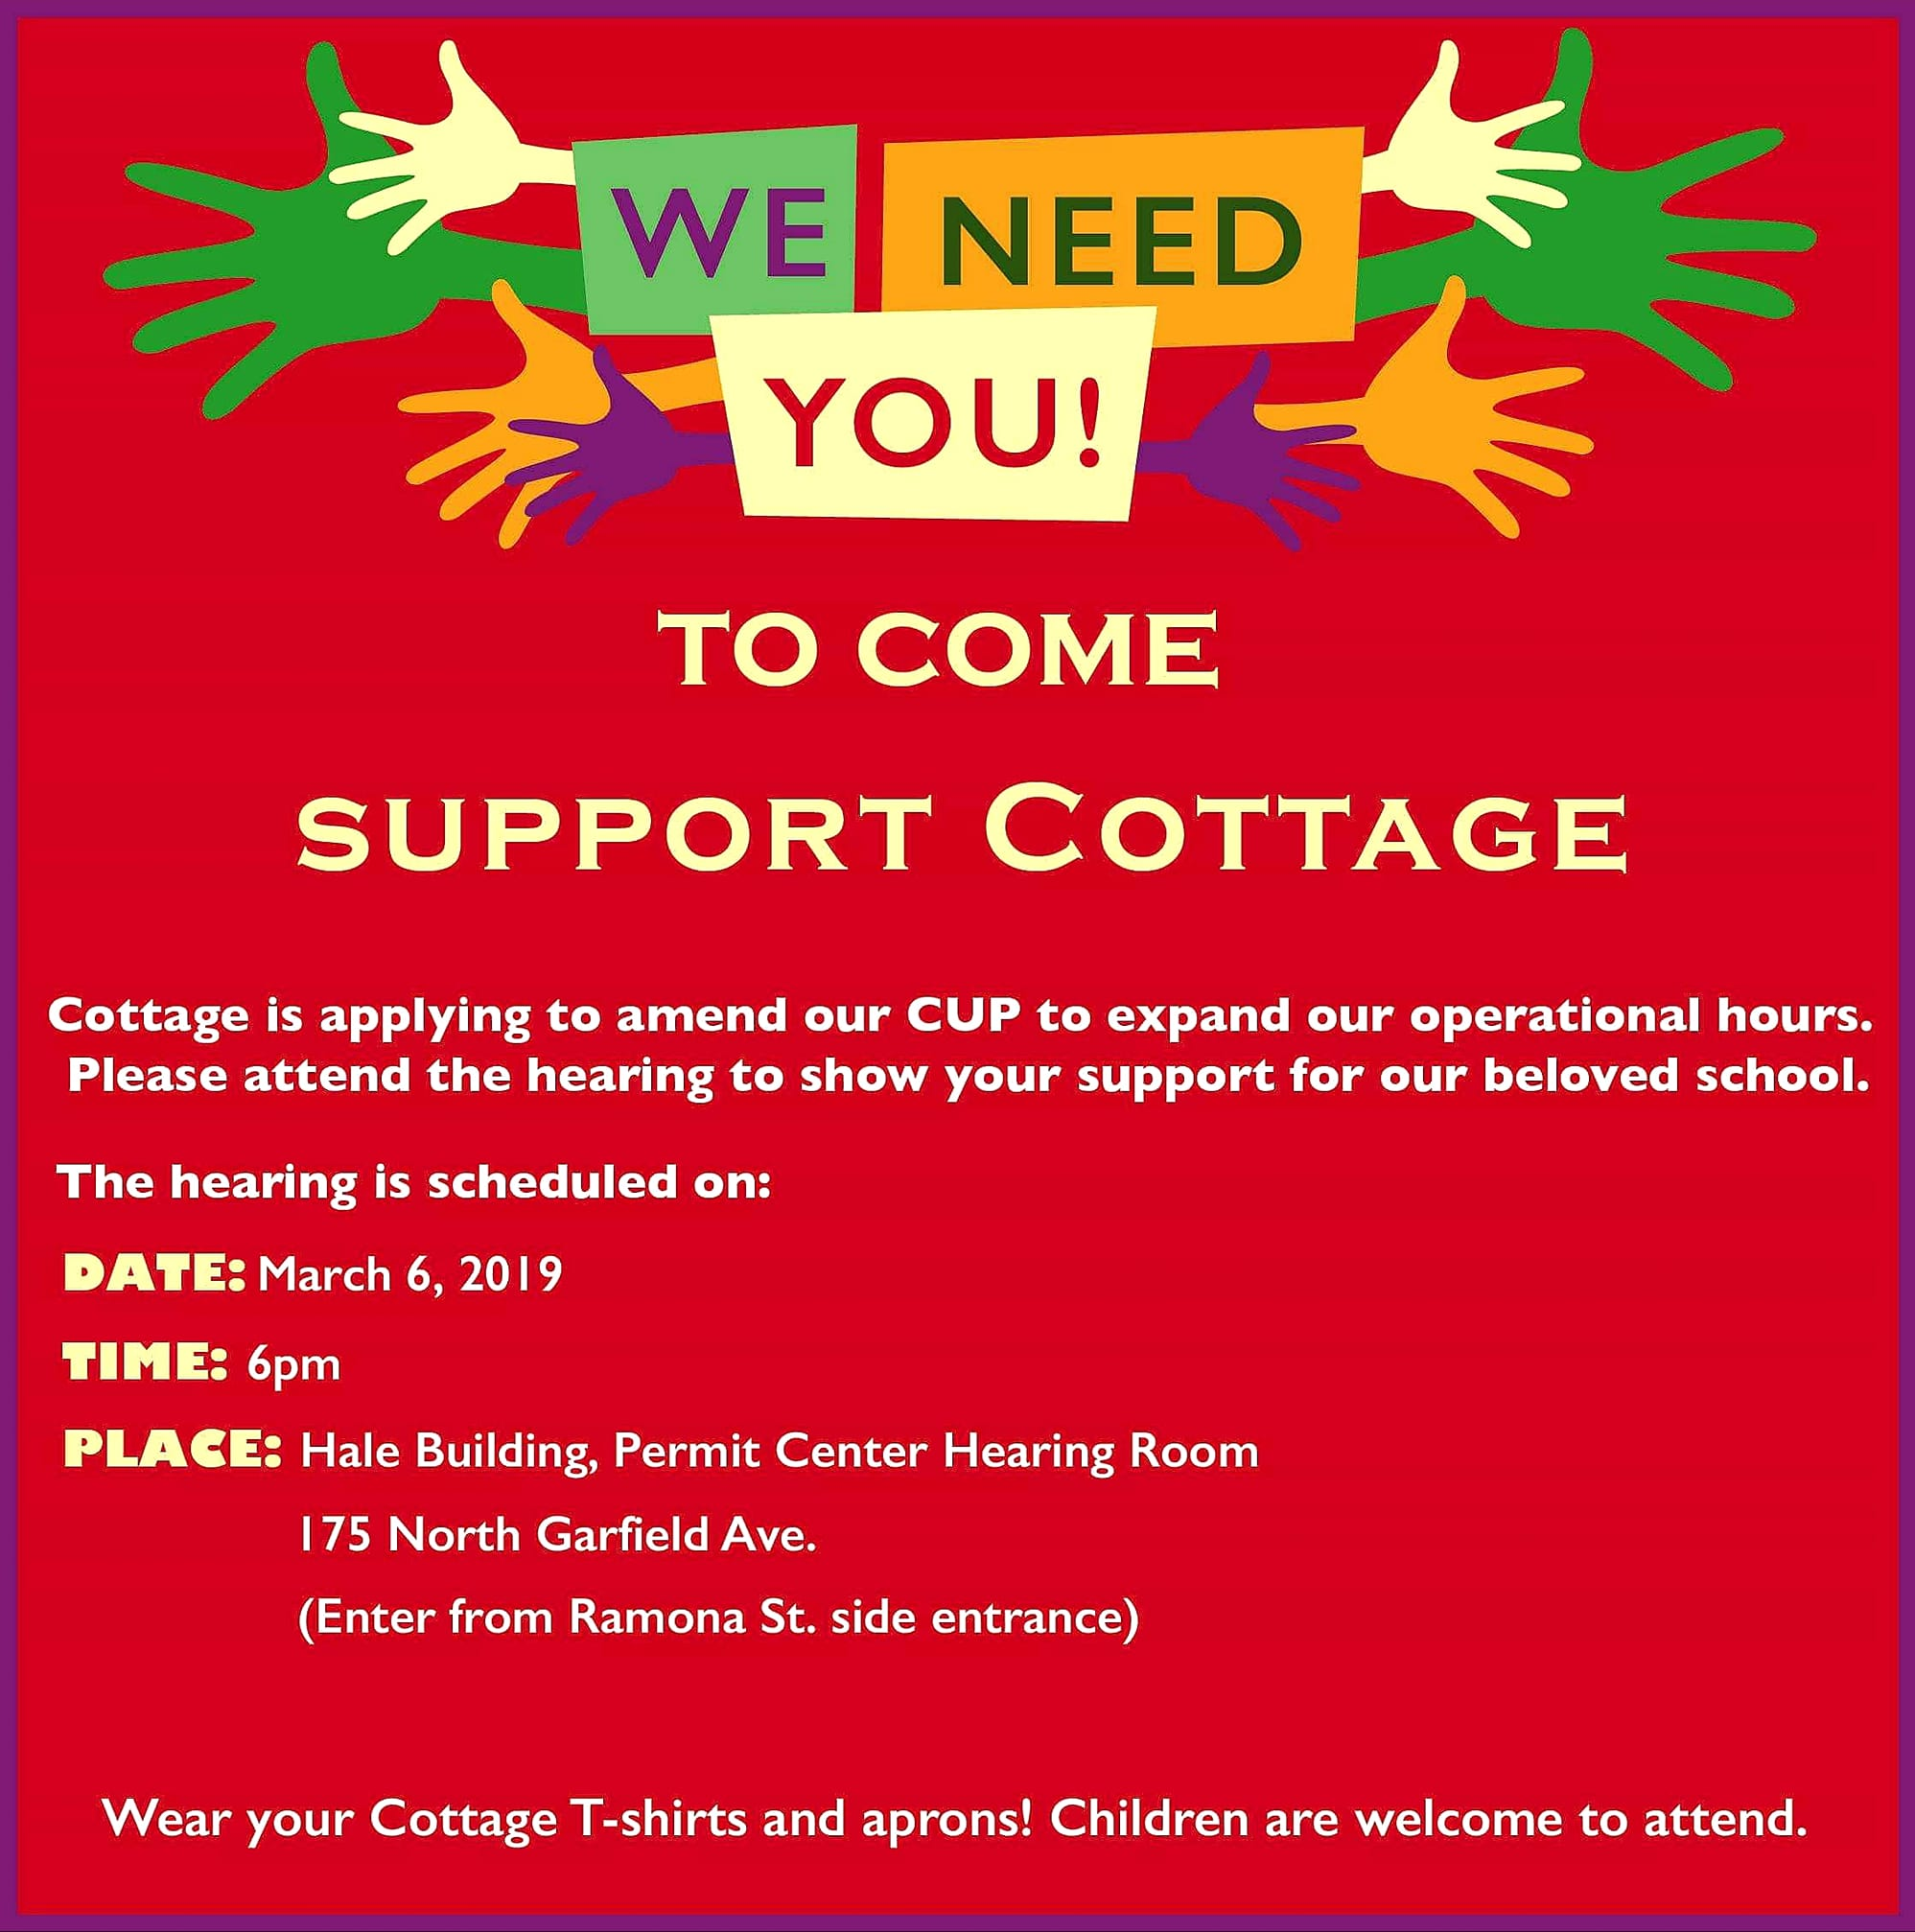 Support_cottage_CUP_3_6.jpg